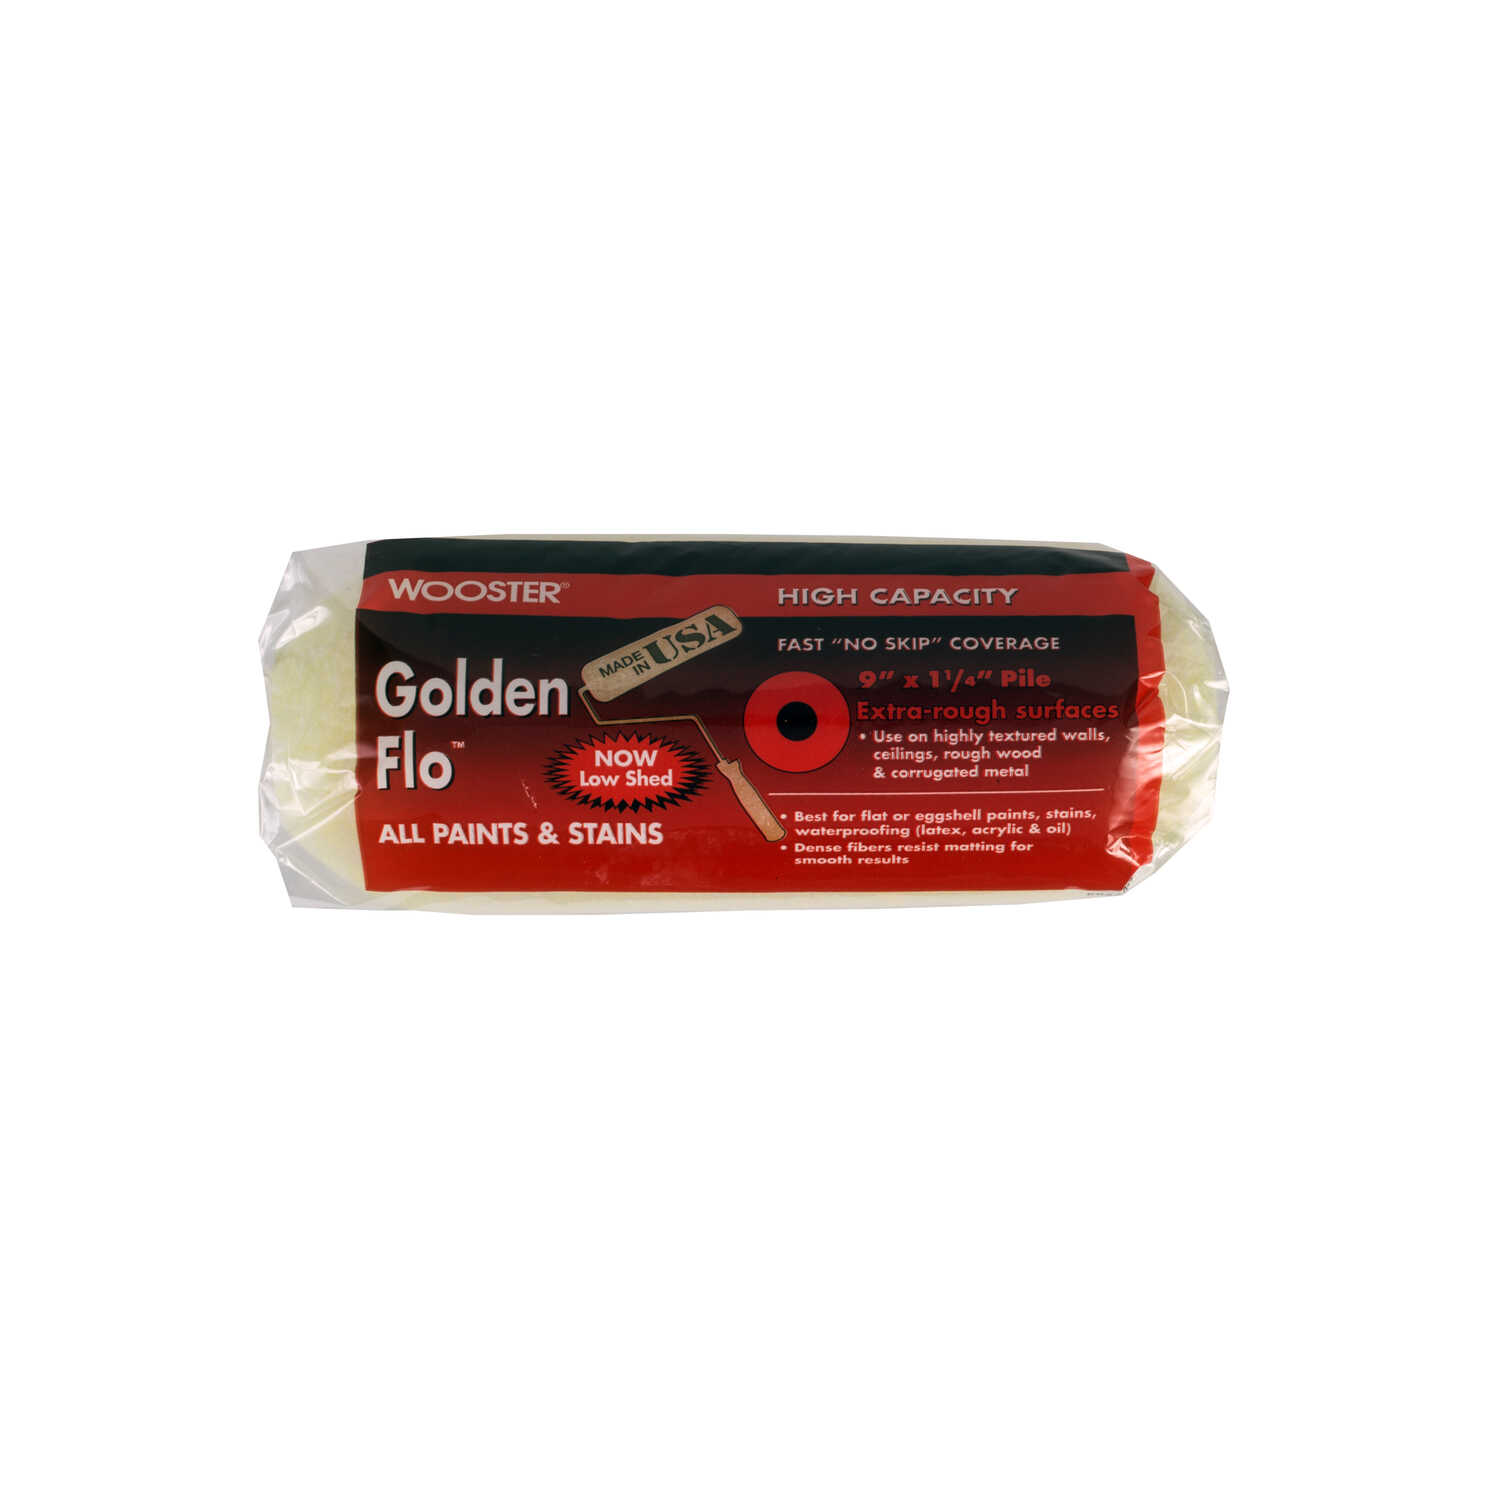 Wooster  Golden Flo  Fabric  1-1/4 in.  x 9 in. W Paint Roller Cover  For Extra Rough Surfaces 1 pk